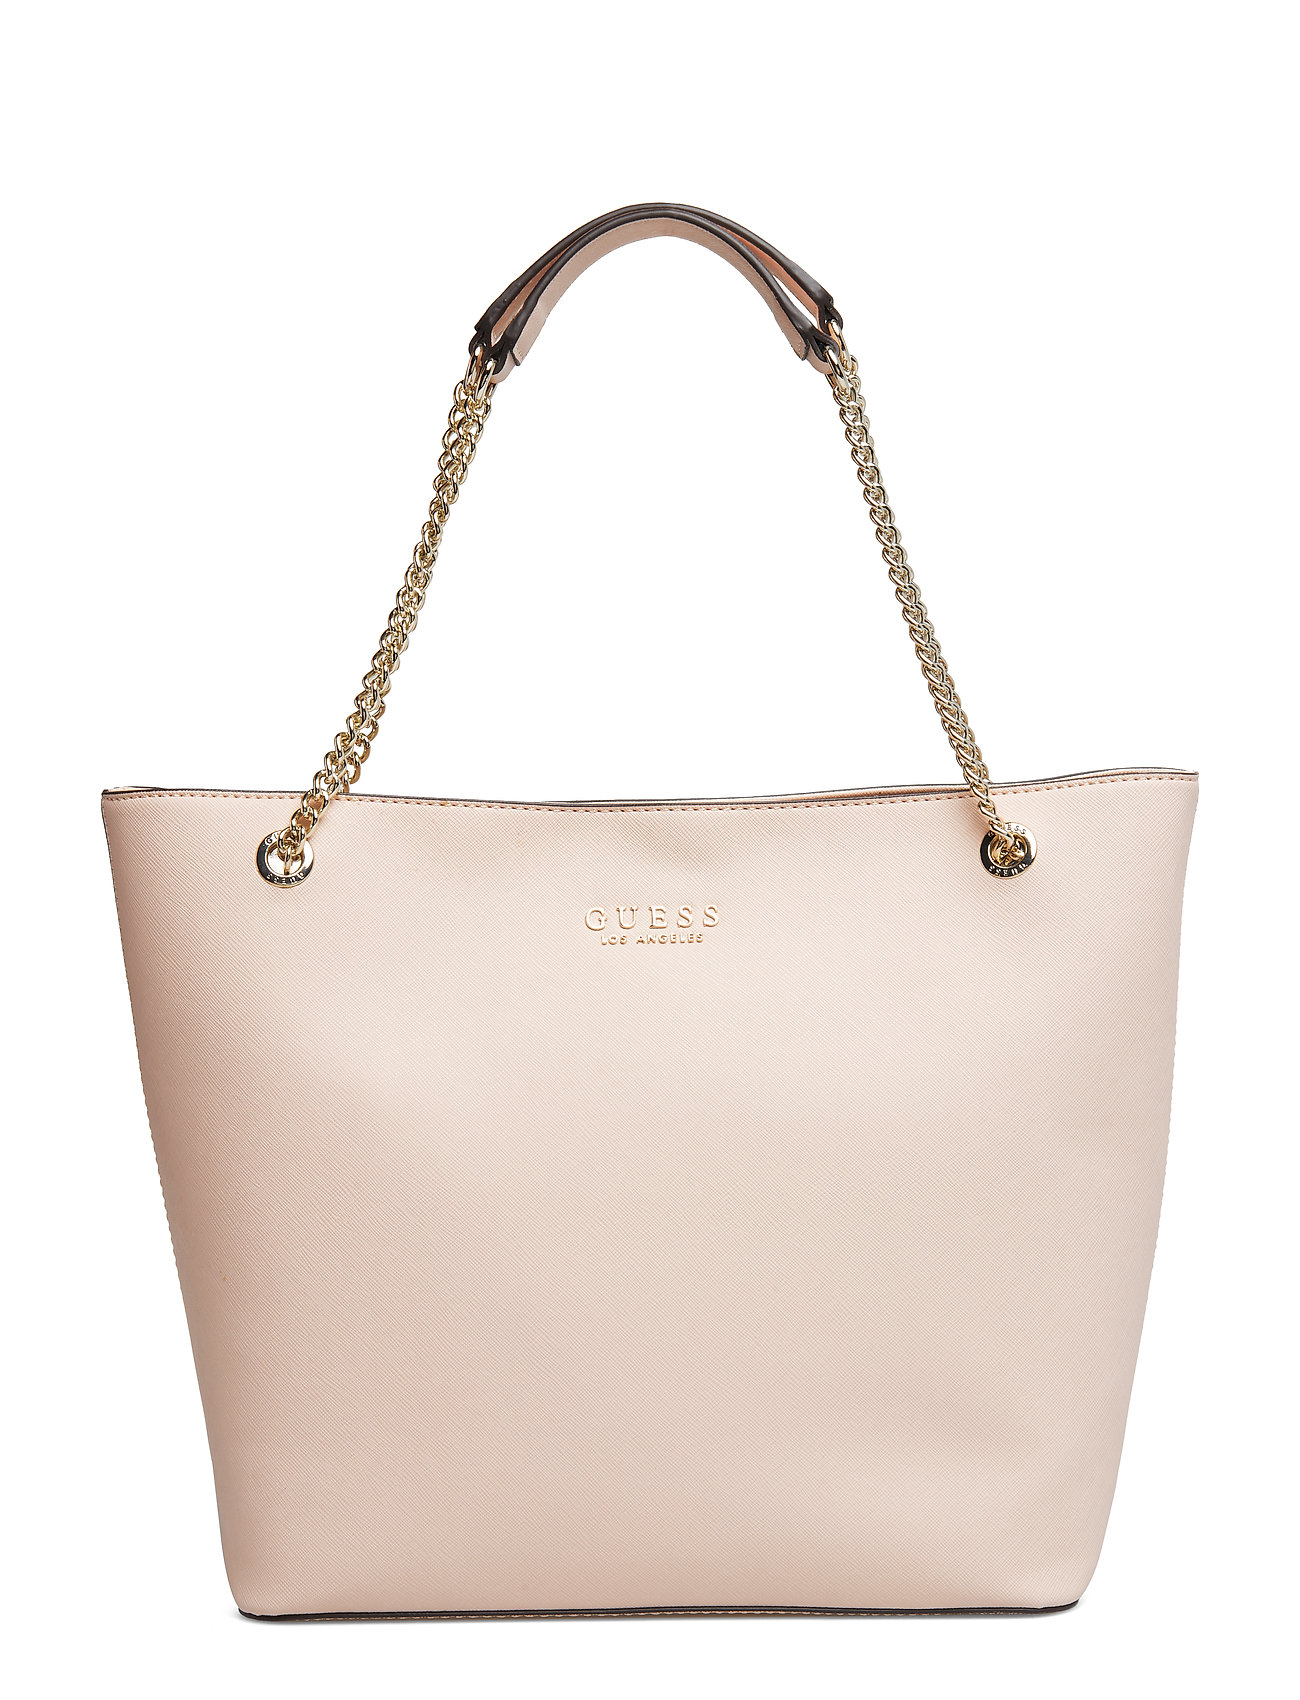 GUESS Robyn Tote Bags Shoppers Fashion Shoppers Pink GUESS